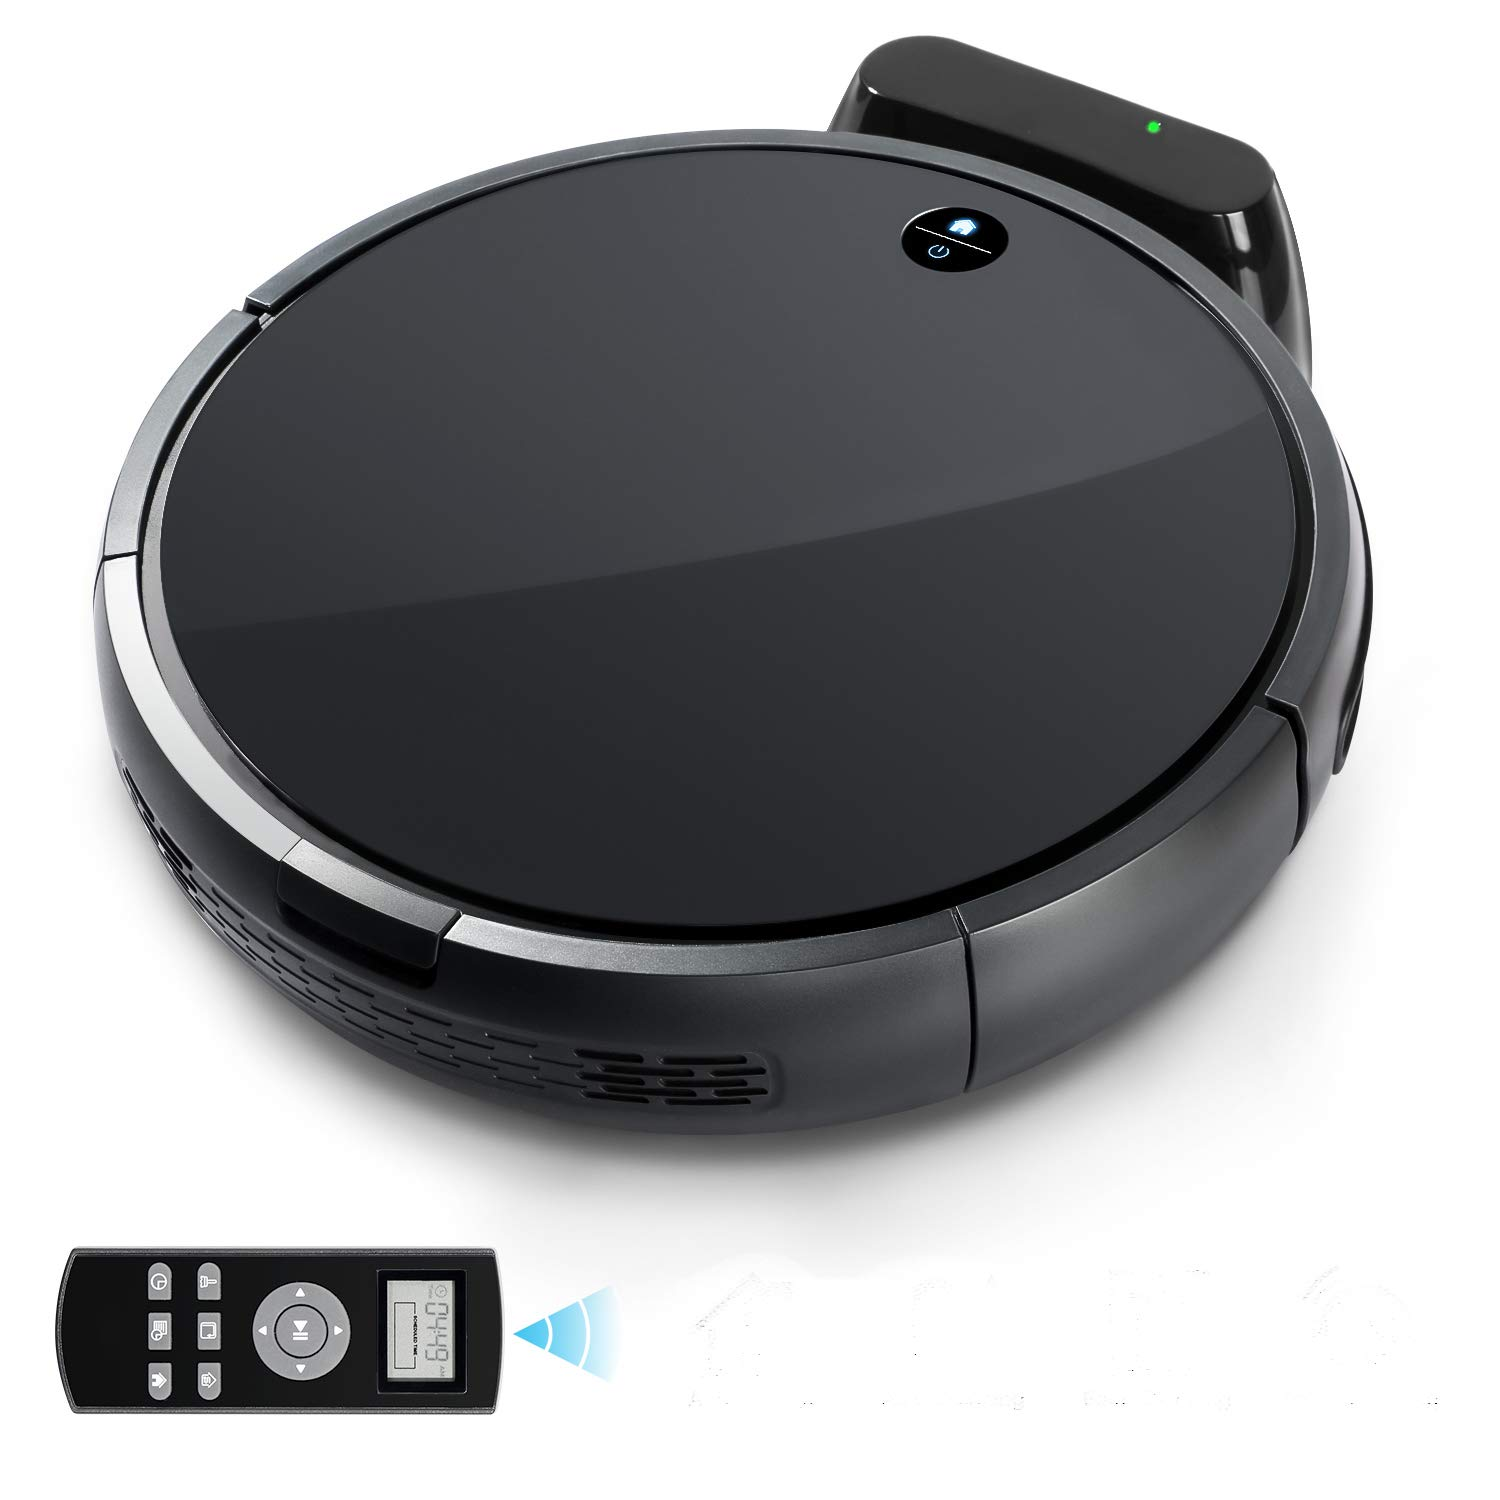 RV-03 Robot Vacuum with Strong Power Suction Tonor, Self-Charging Robotic Vacuum Cleaner Hepa Filter for Clean Carpet Hardwood Floor Pet Fur and Allergens